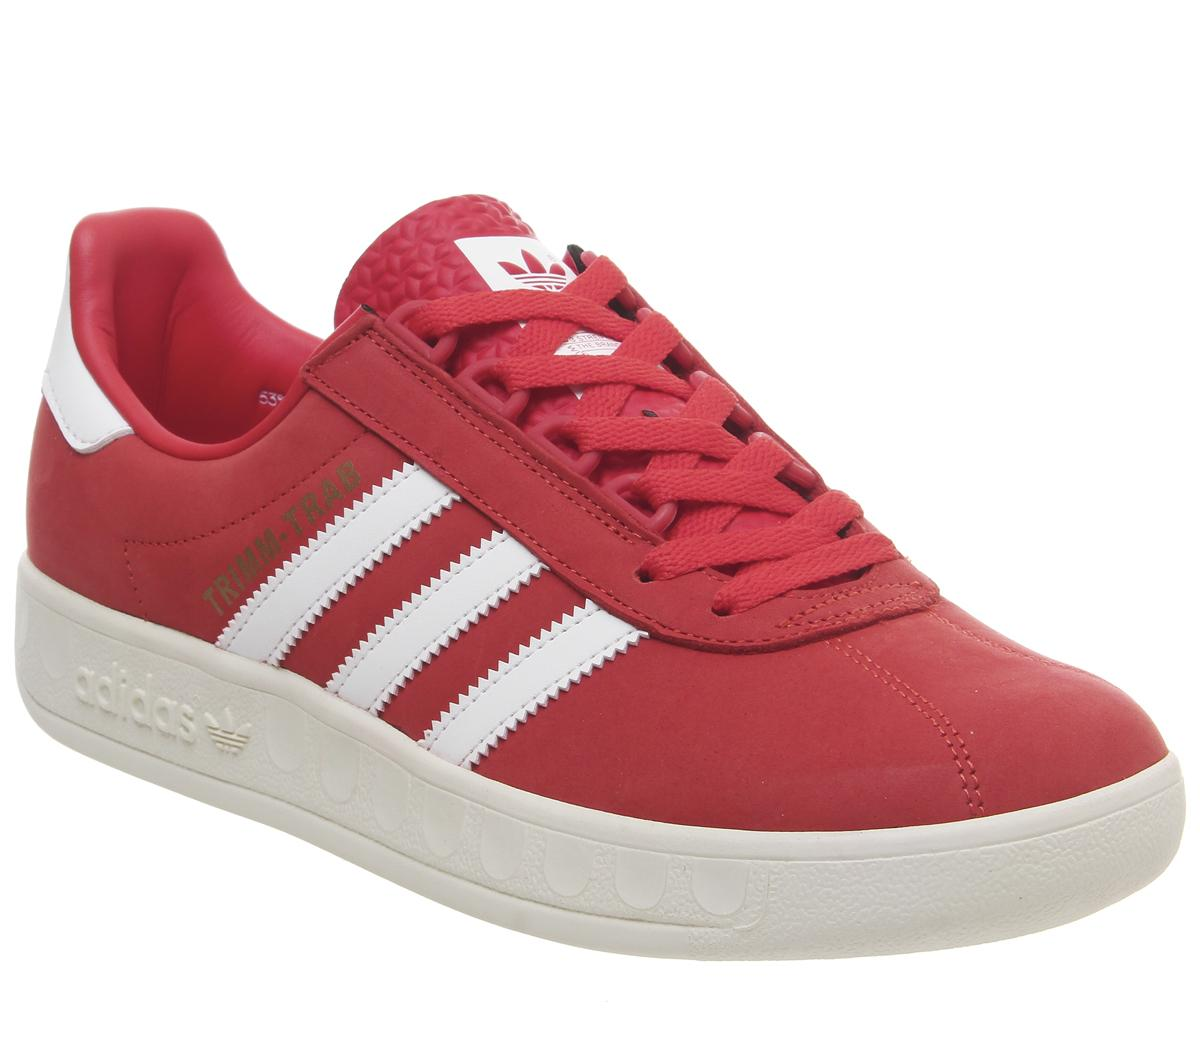 muelle orientación Atlas  adidas Trimm Trab Trainers Active Red White Gold - His trainers